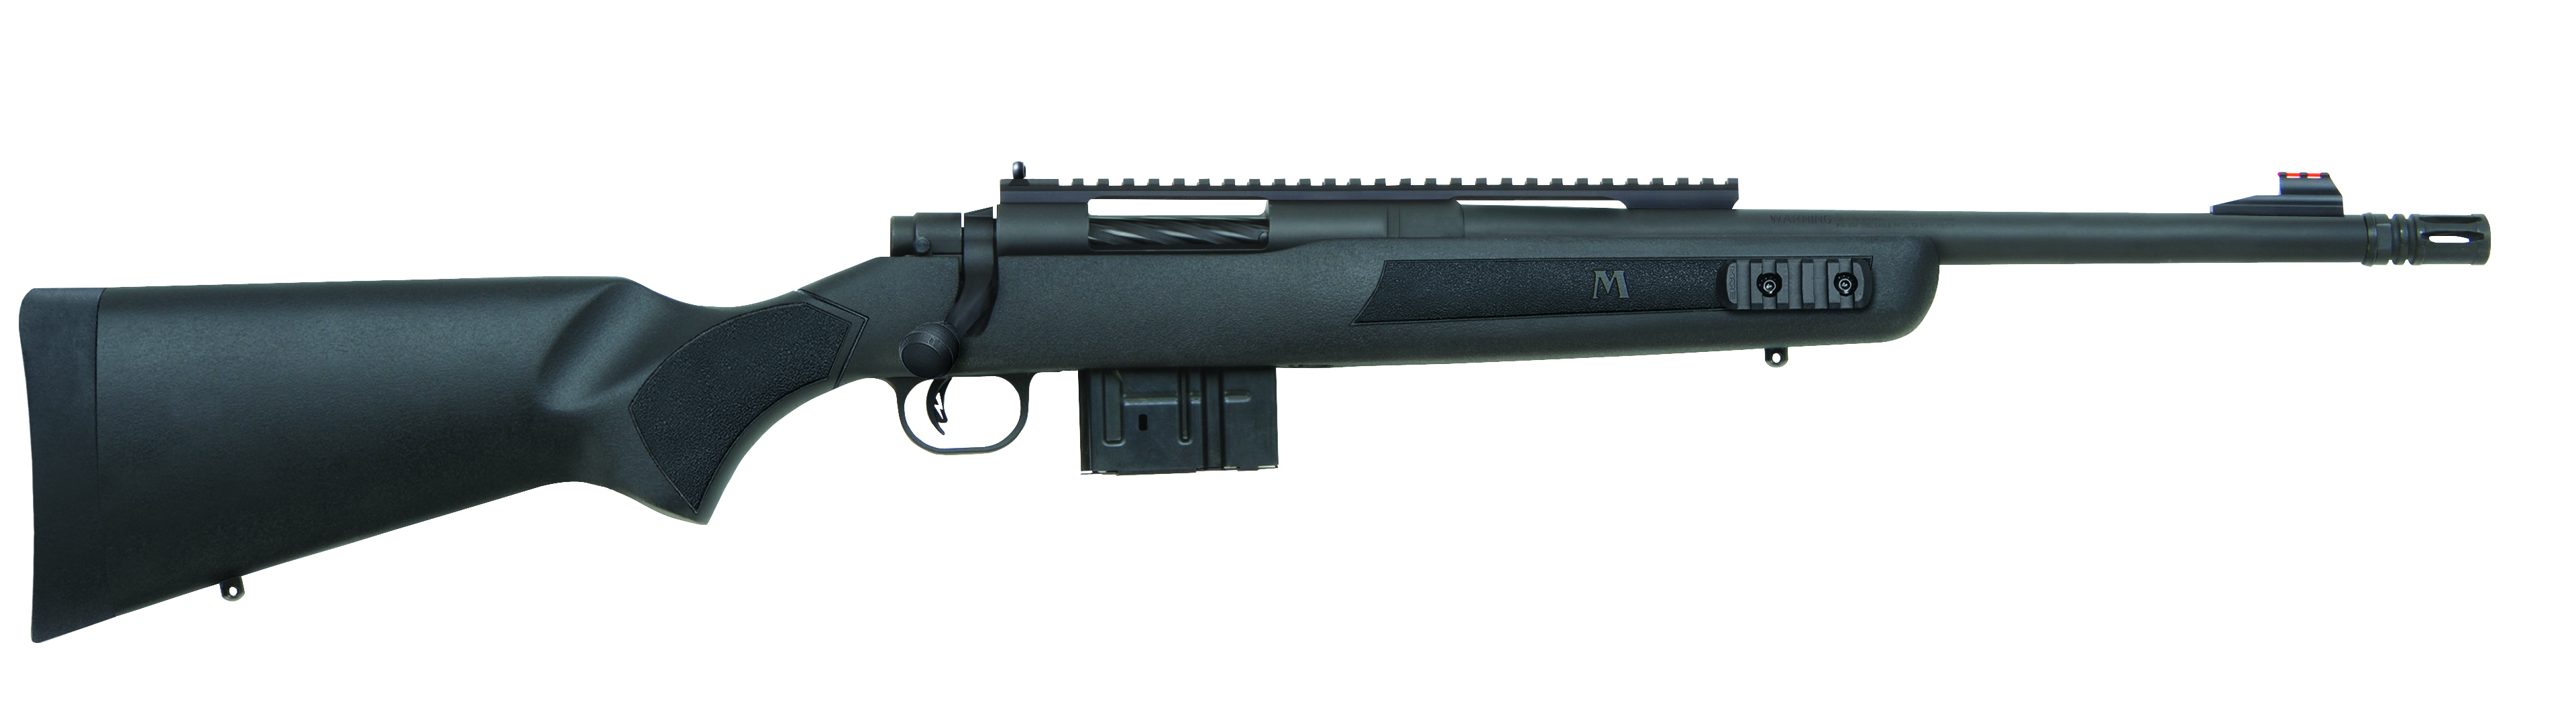 Scout Rifle Roundup Four Takes On A Classic